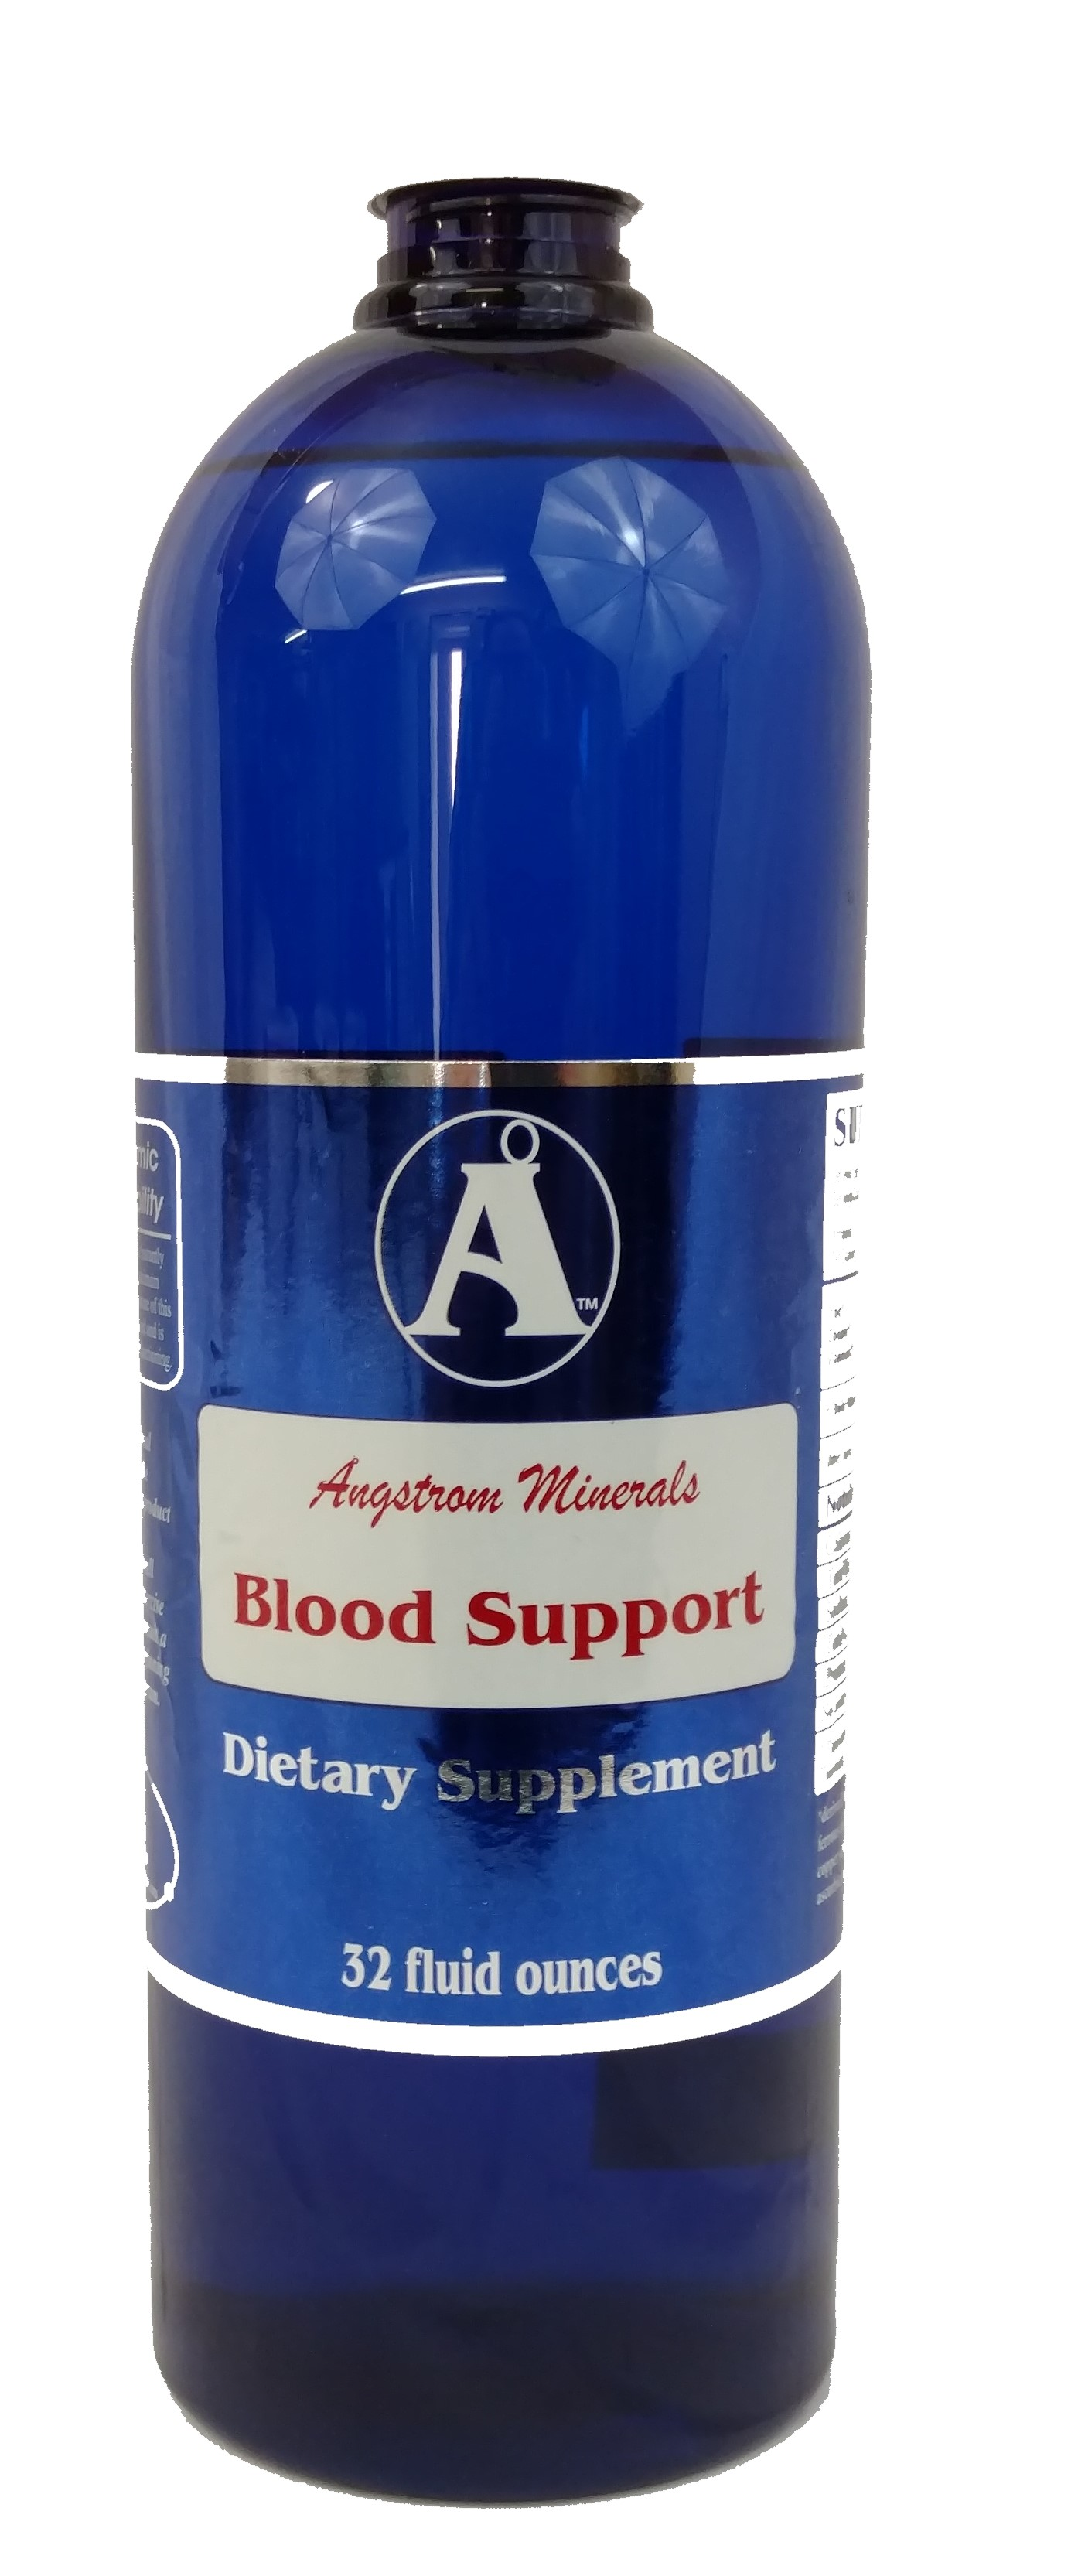 anemia iron supplements